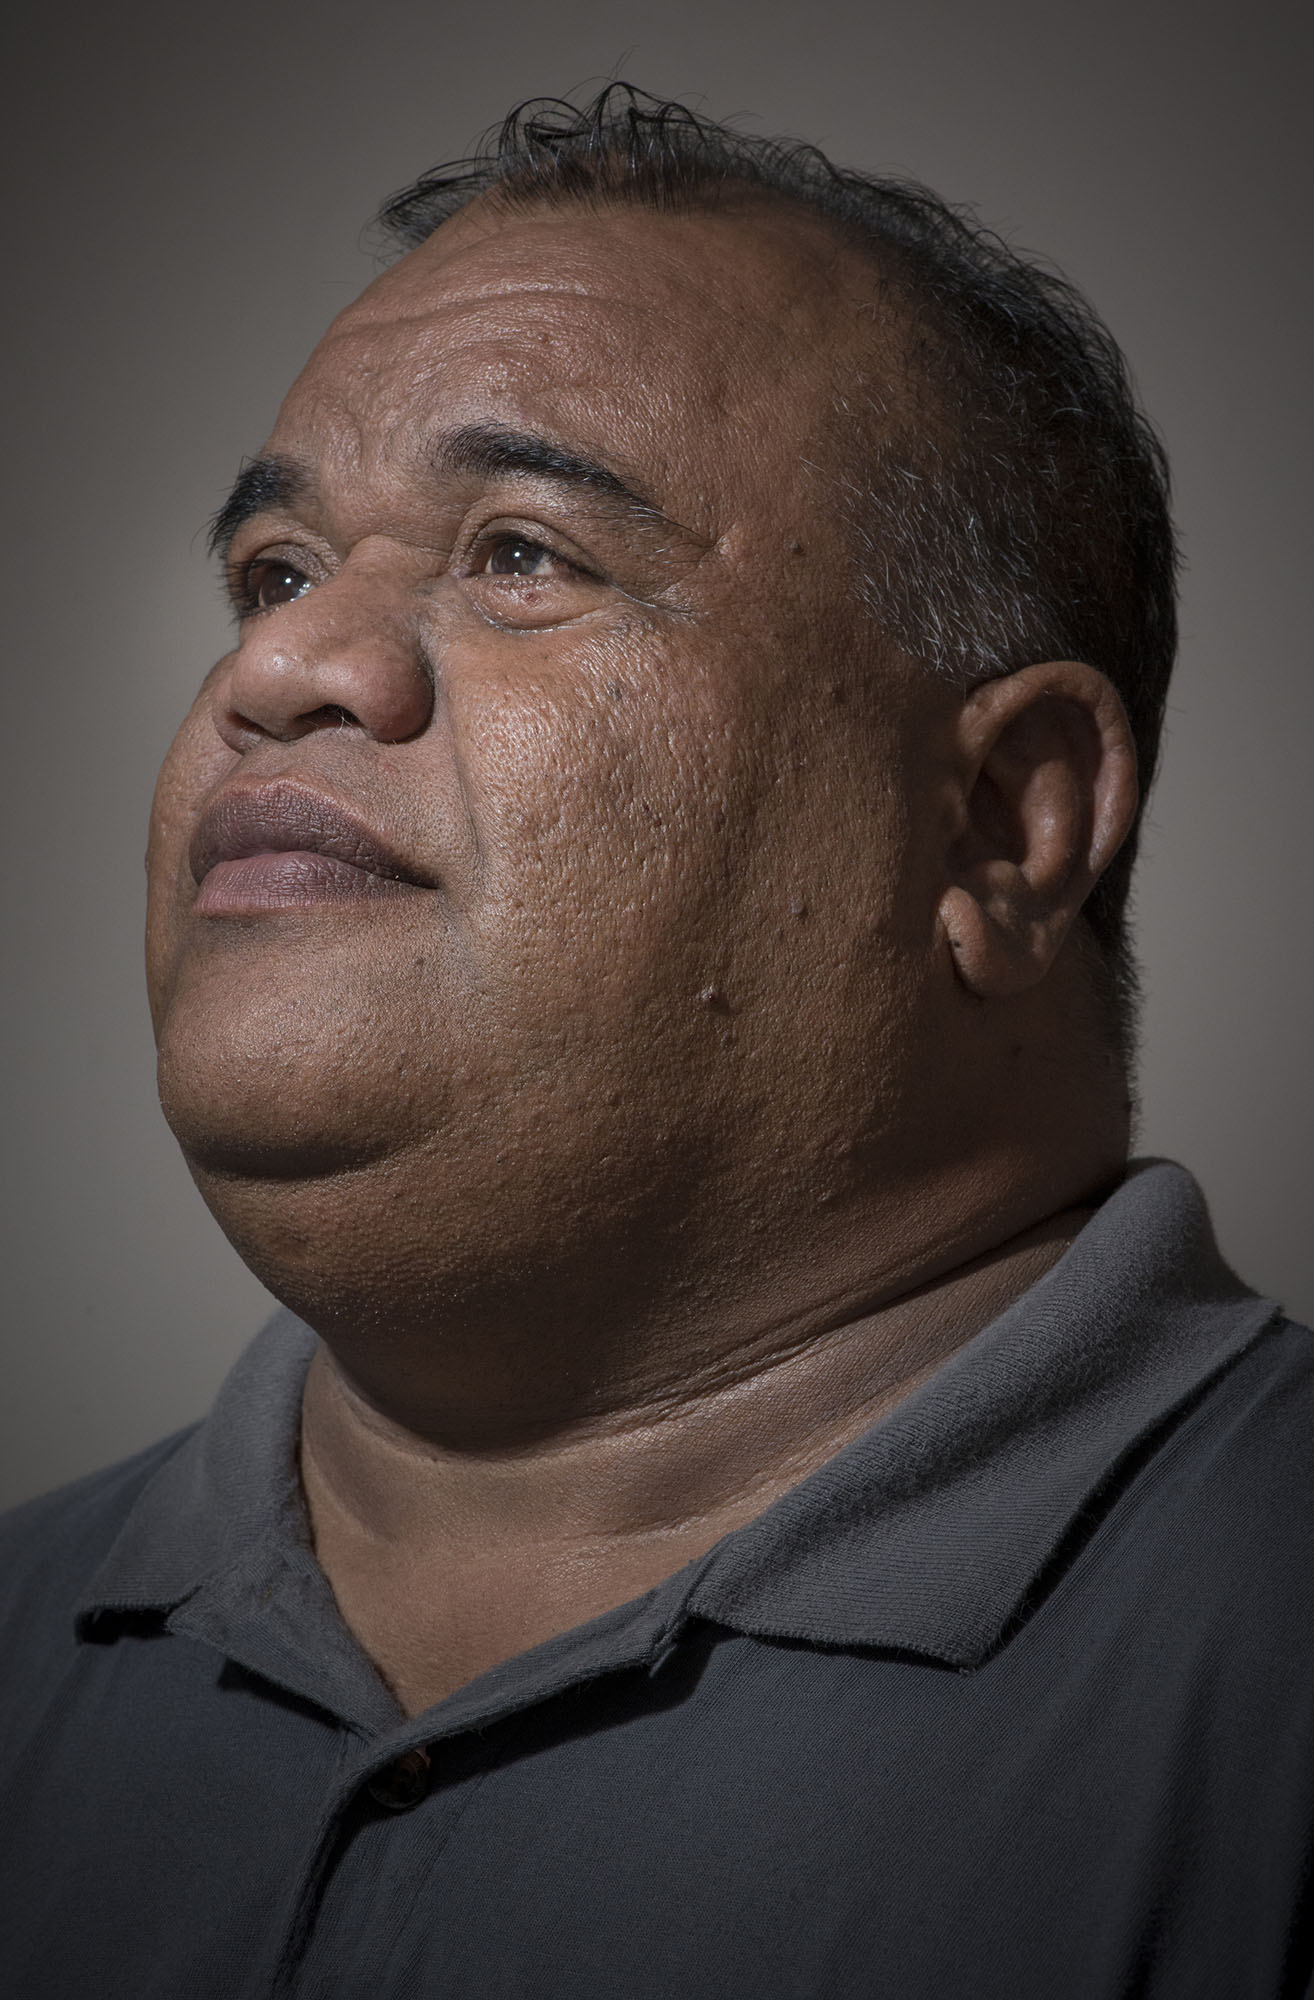 <p>Dean Langinbelik, a member of the Rongelap Council, in Majuro in the Marshalls. He longs to return to Rongelap, but it remains too dangerous because of remaining contamination from nuclear testing.</p>